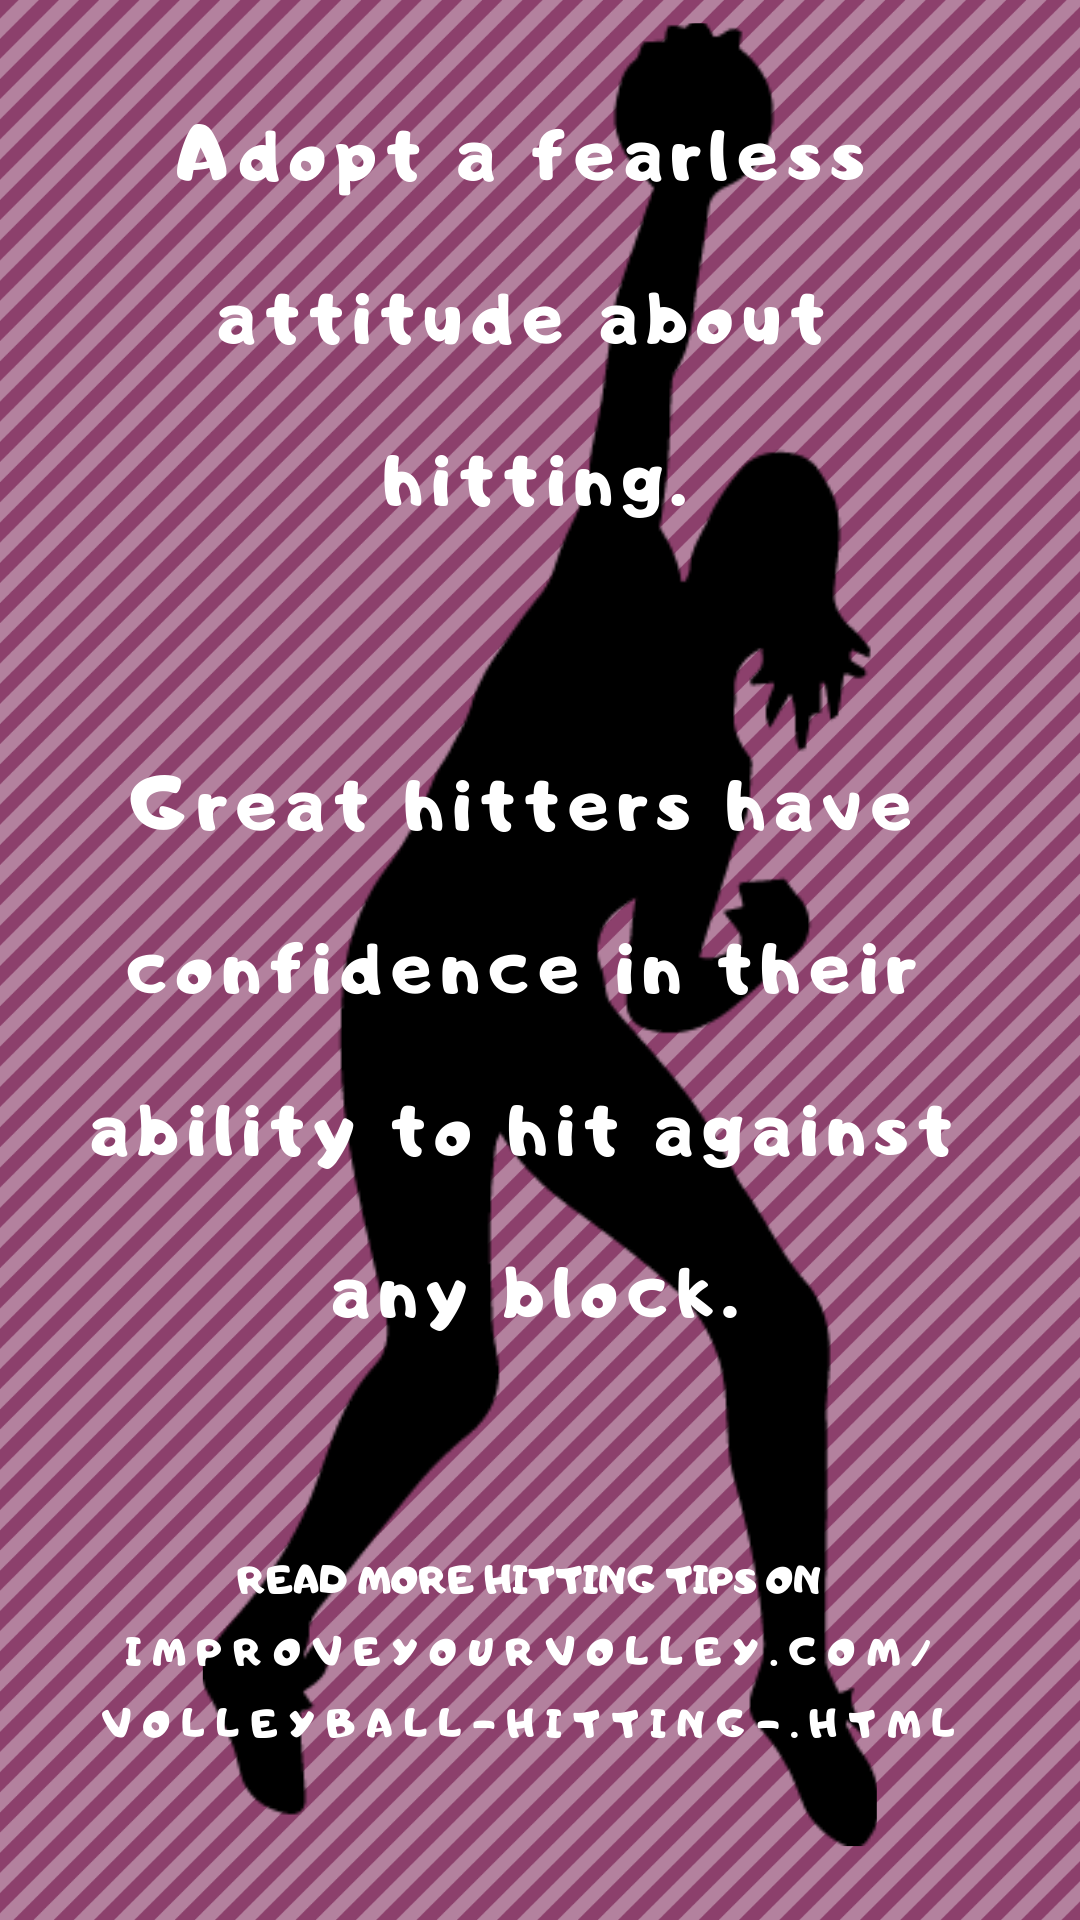 Adopt a fearless attitude about hitting. Read more hitting tips at www.improveyourvolley.com/volleyball-hitting.html